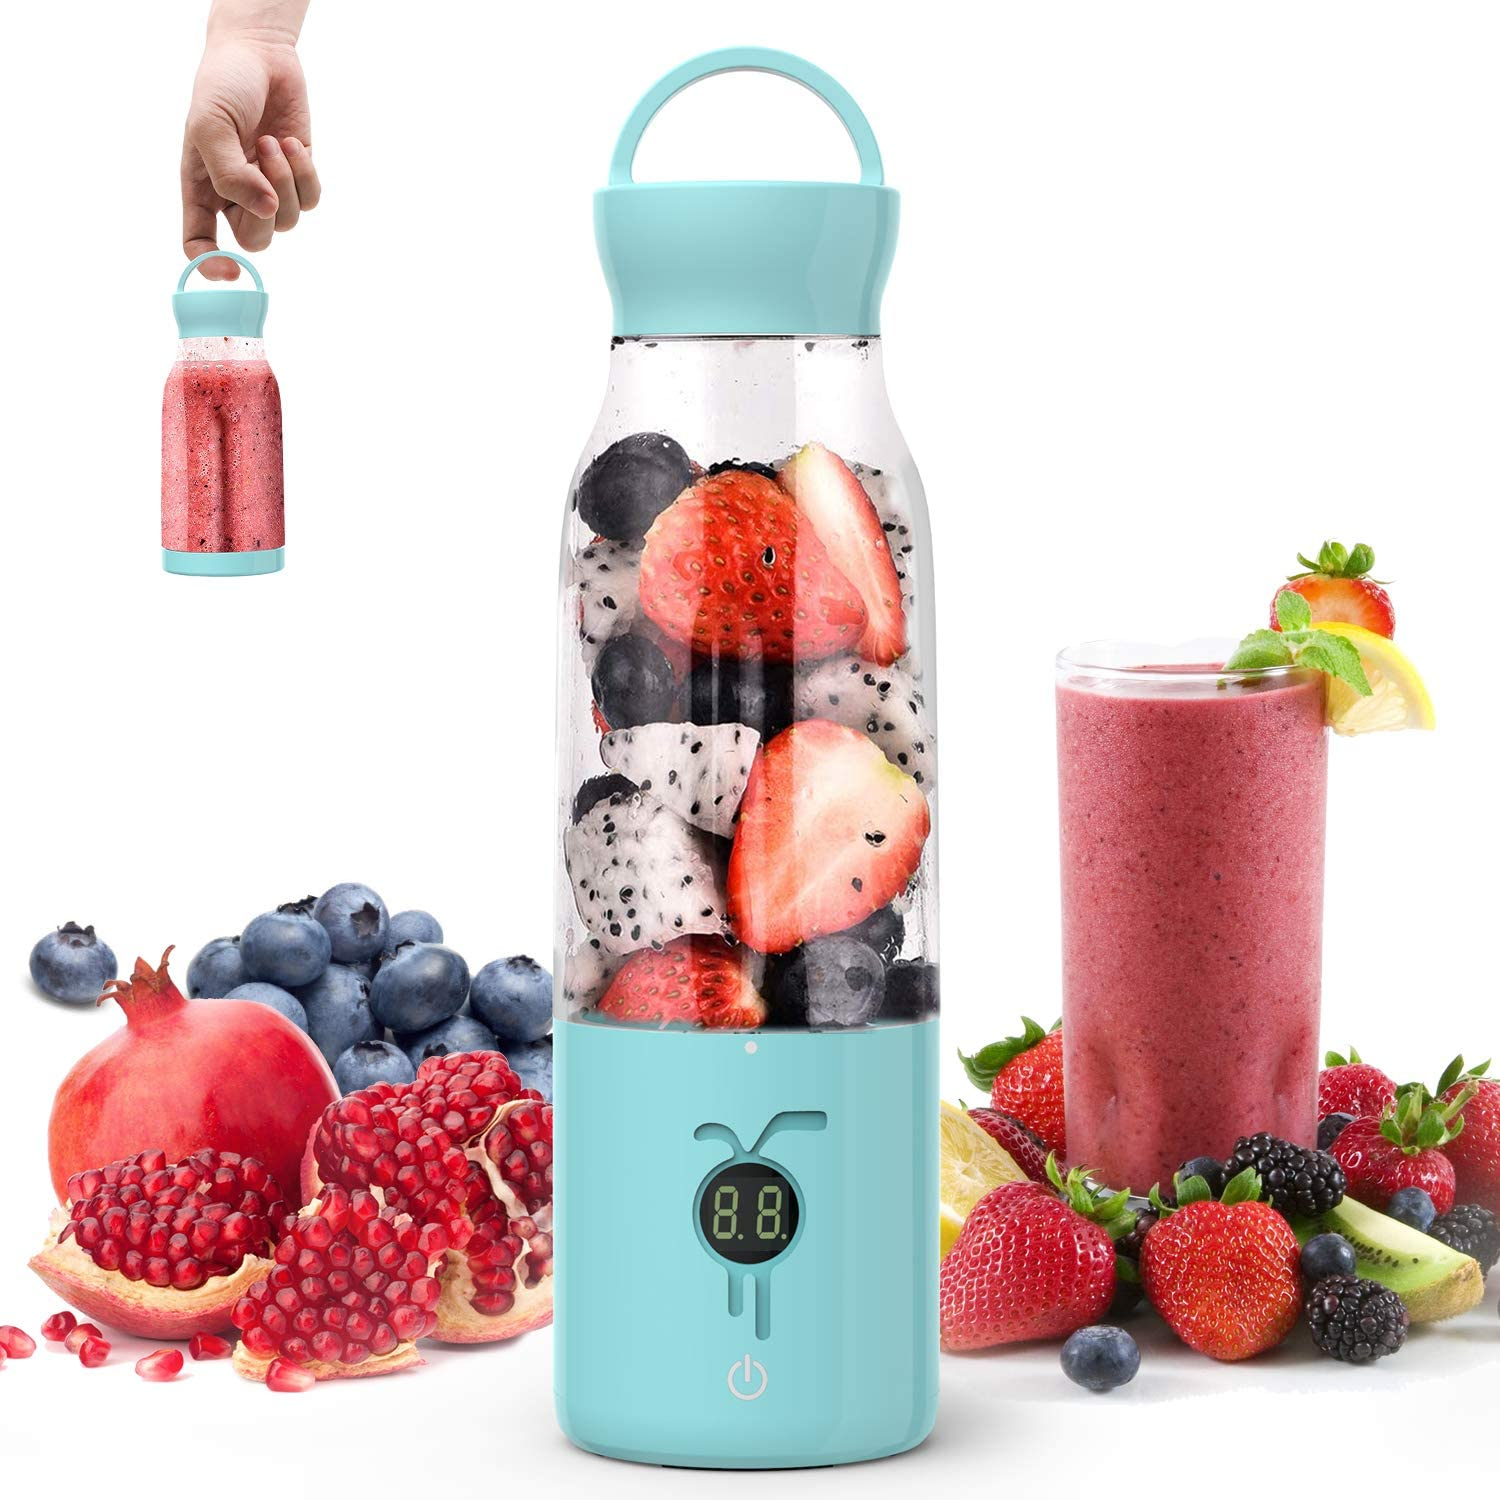 Portable Smoothie Blender - NTONPOWER Personal Blender Juicer Cup with USB Rechargeable, 450ML Single Serve Fruit Mixer with Stainless Steel 6-Blade, Multifunctional Small Travel Blender with 4000mAh High Capacity Batteries